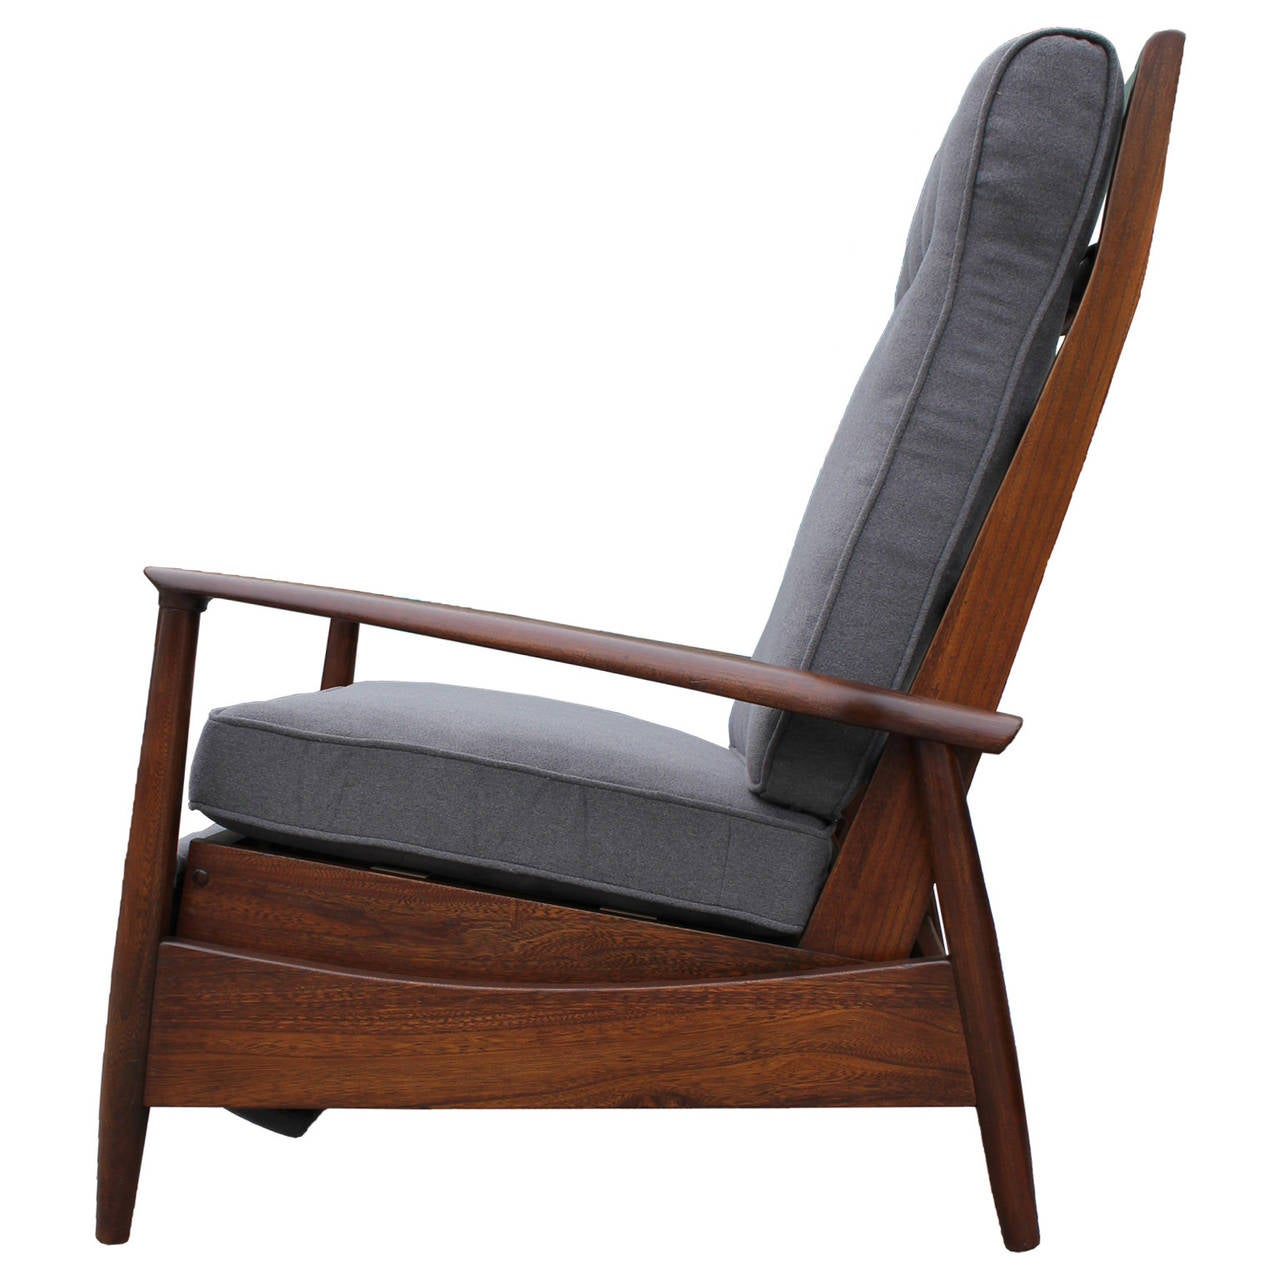 Scandinavian Reclining Lounge Chair 3  sc 1 st  1stDibs & Scandinavian Reclining Lounge Chair at 1stdibs islam-shia.org